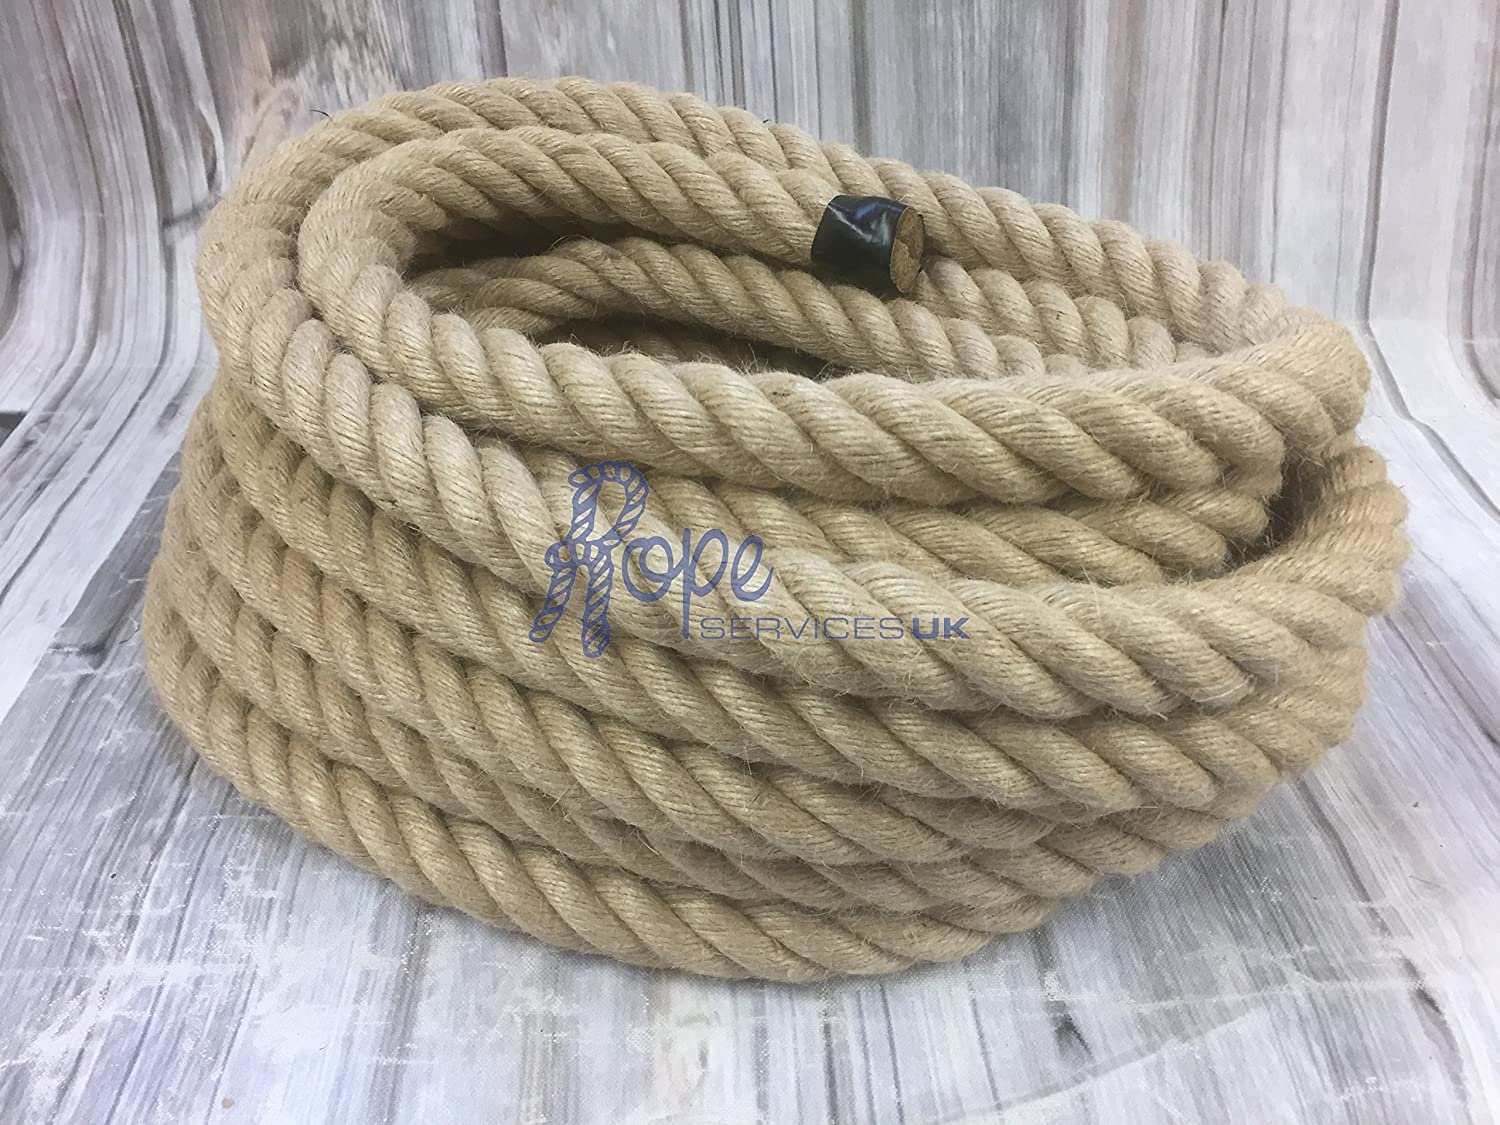 RopeServices UK 24mm Natural Jute Rope x 20 Metre Length - 4 Strand, Decking, Garden, Boating, Home